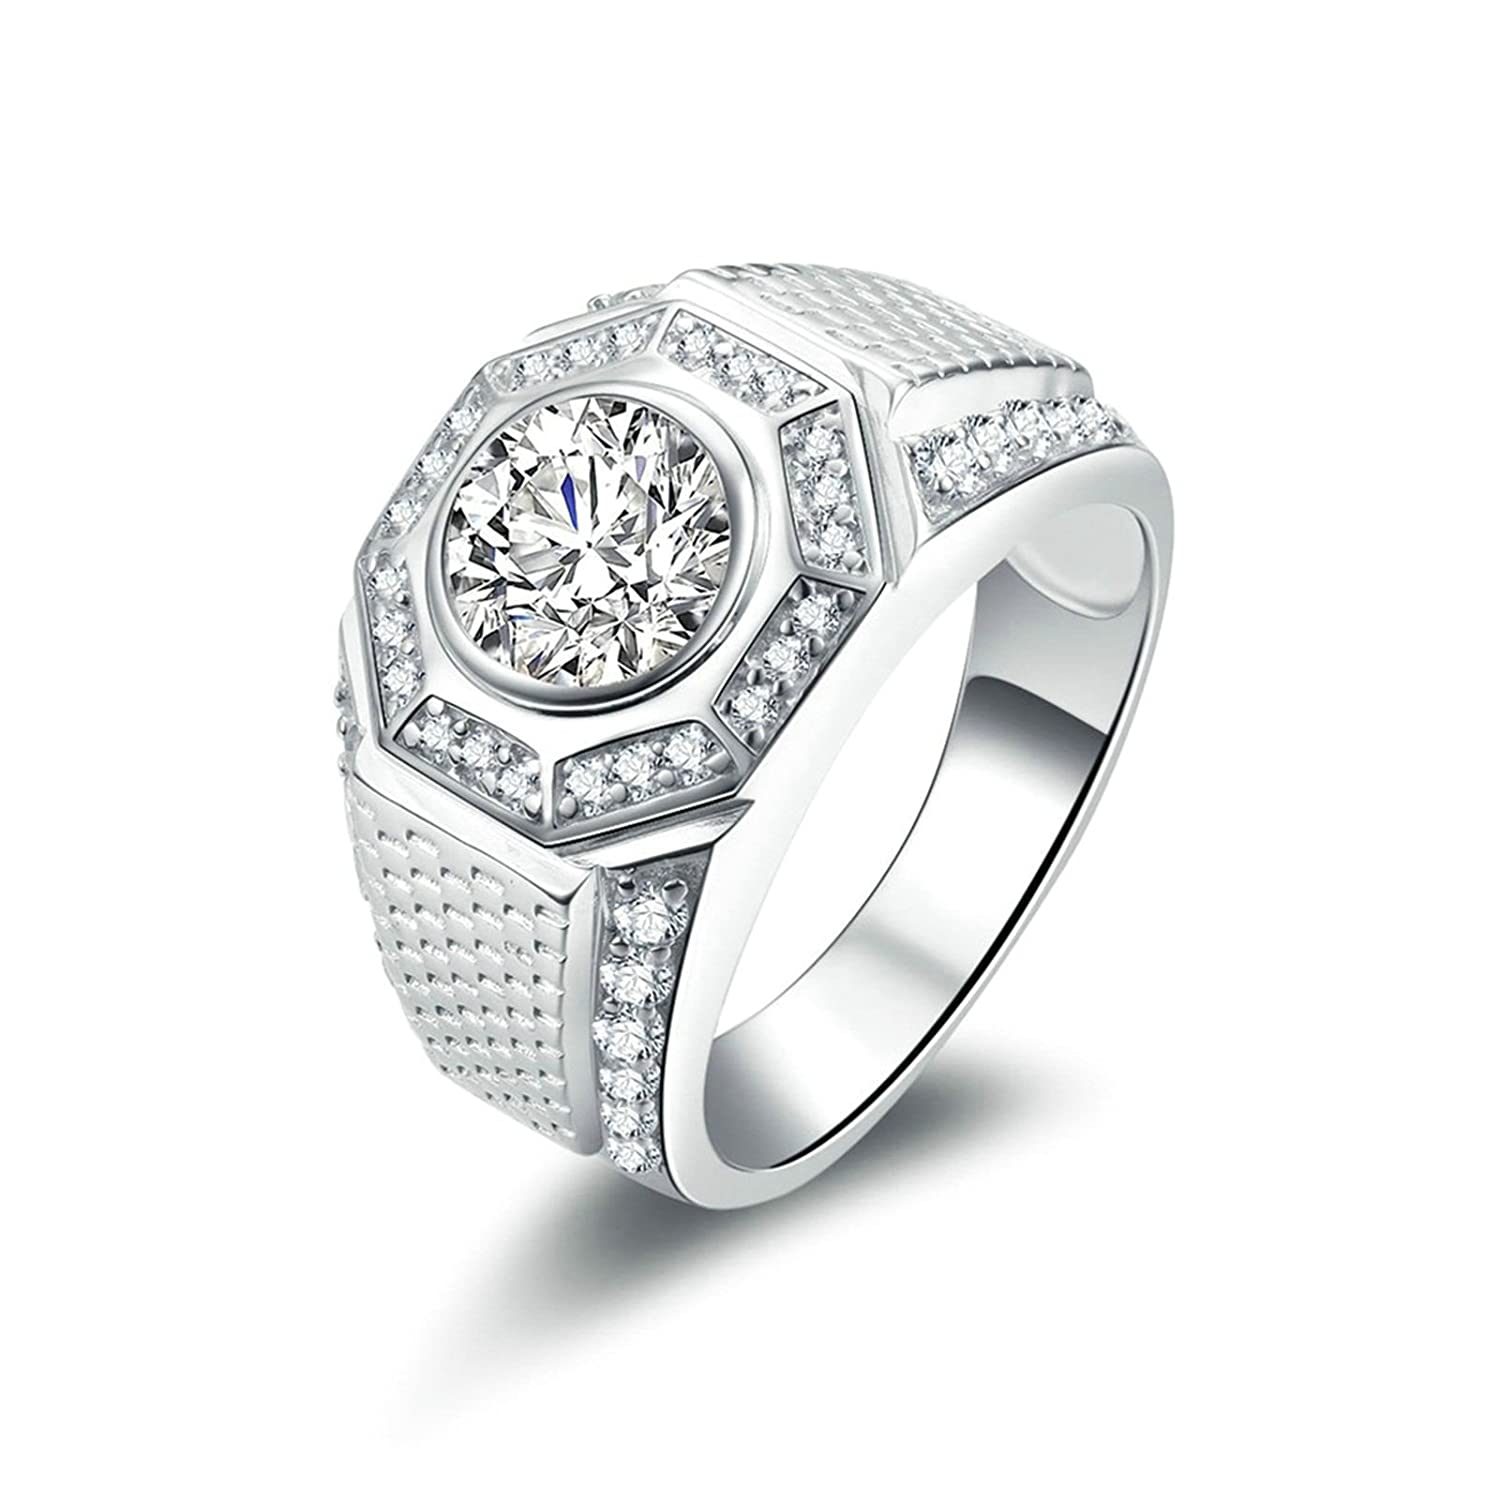 Bishilin Rings for Mens Wedding Iced Out Ring Round White Cubic Zirconia Size 11